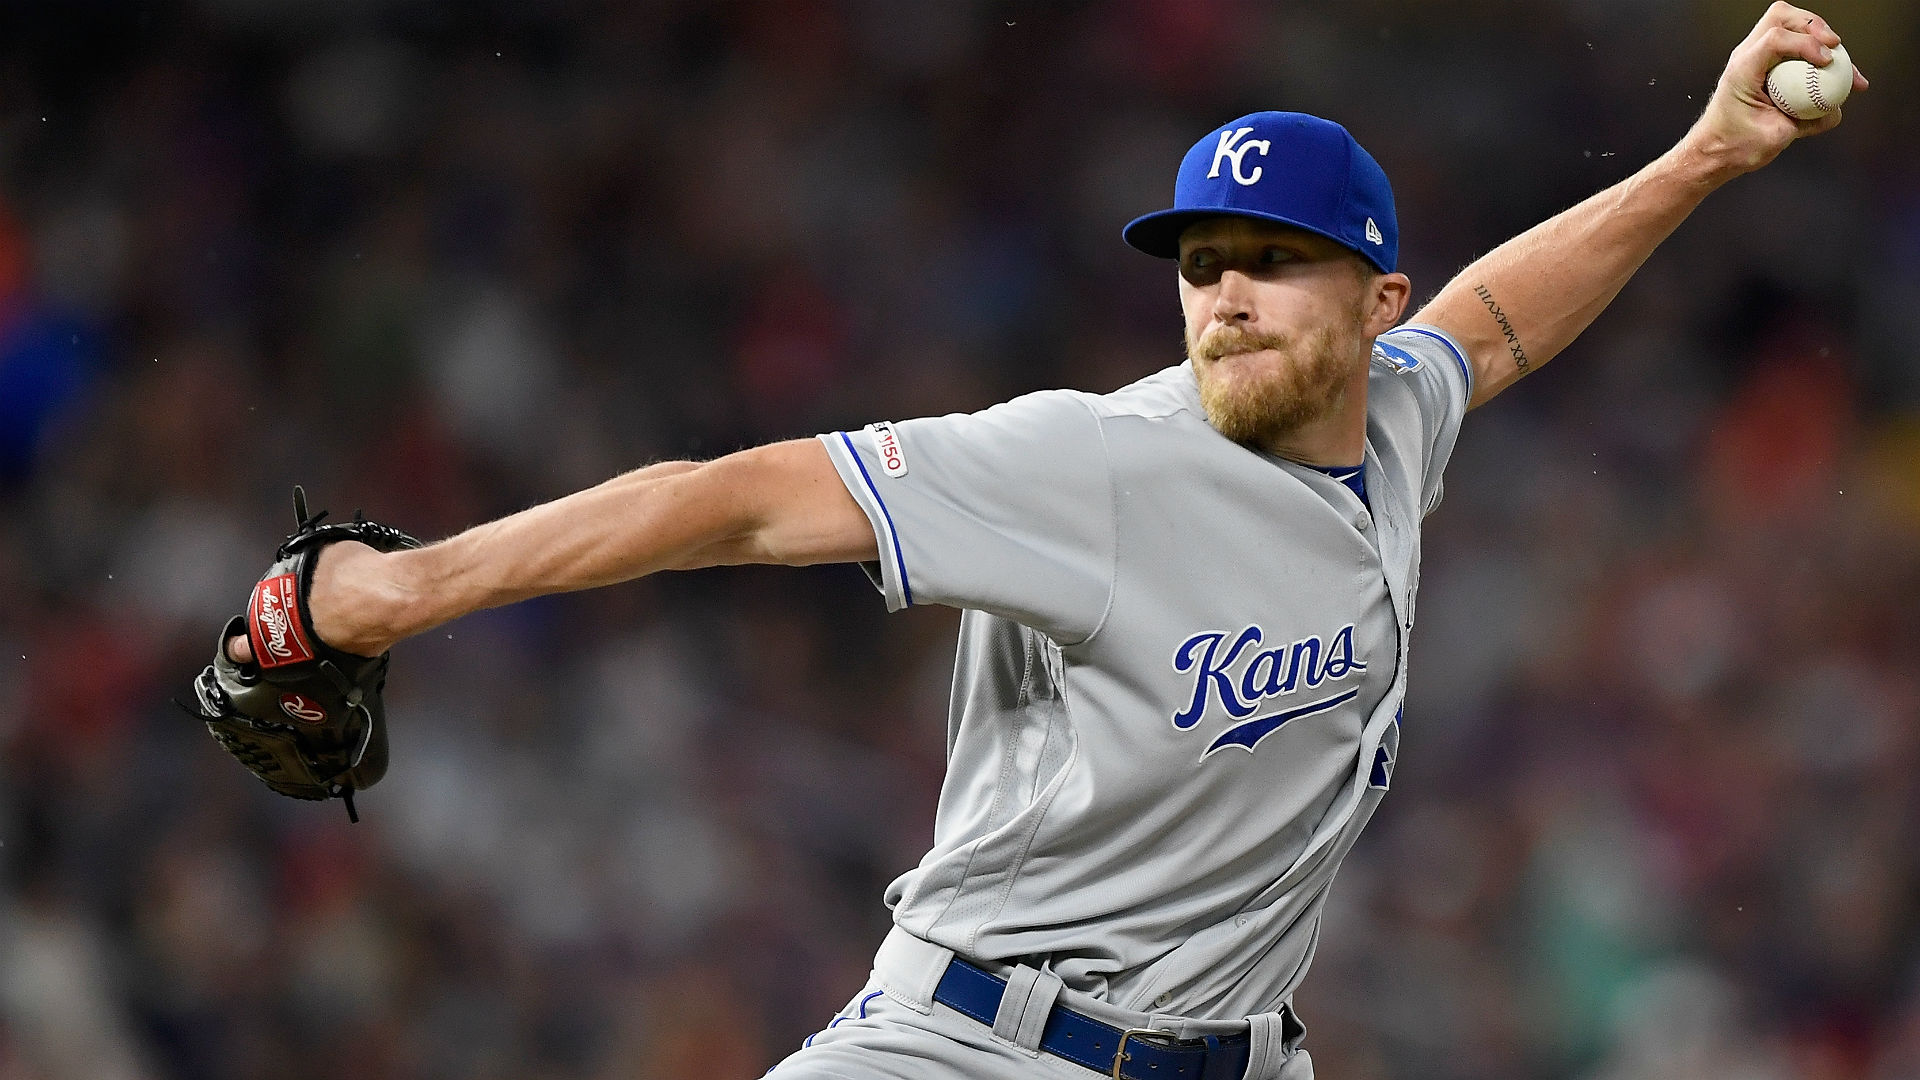 The Royals are focused on moving Diekman, along with their other veterans, before the July 31 trade deadline.